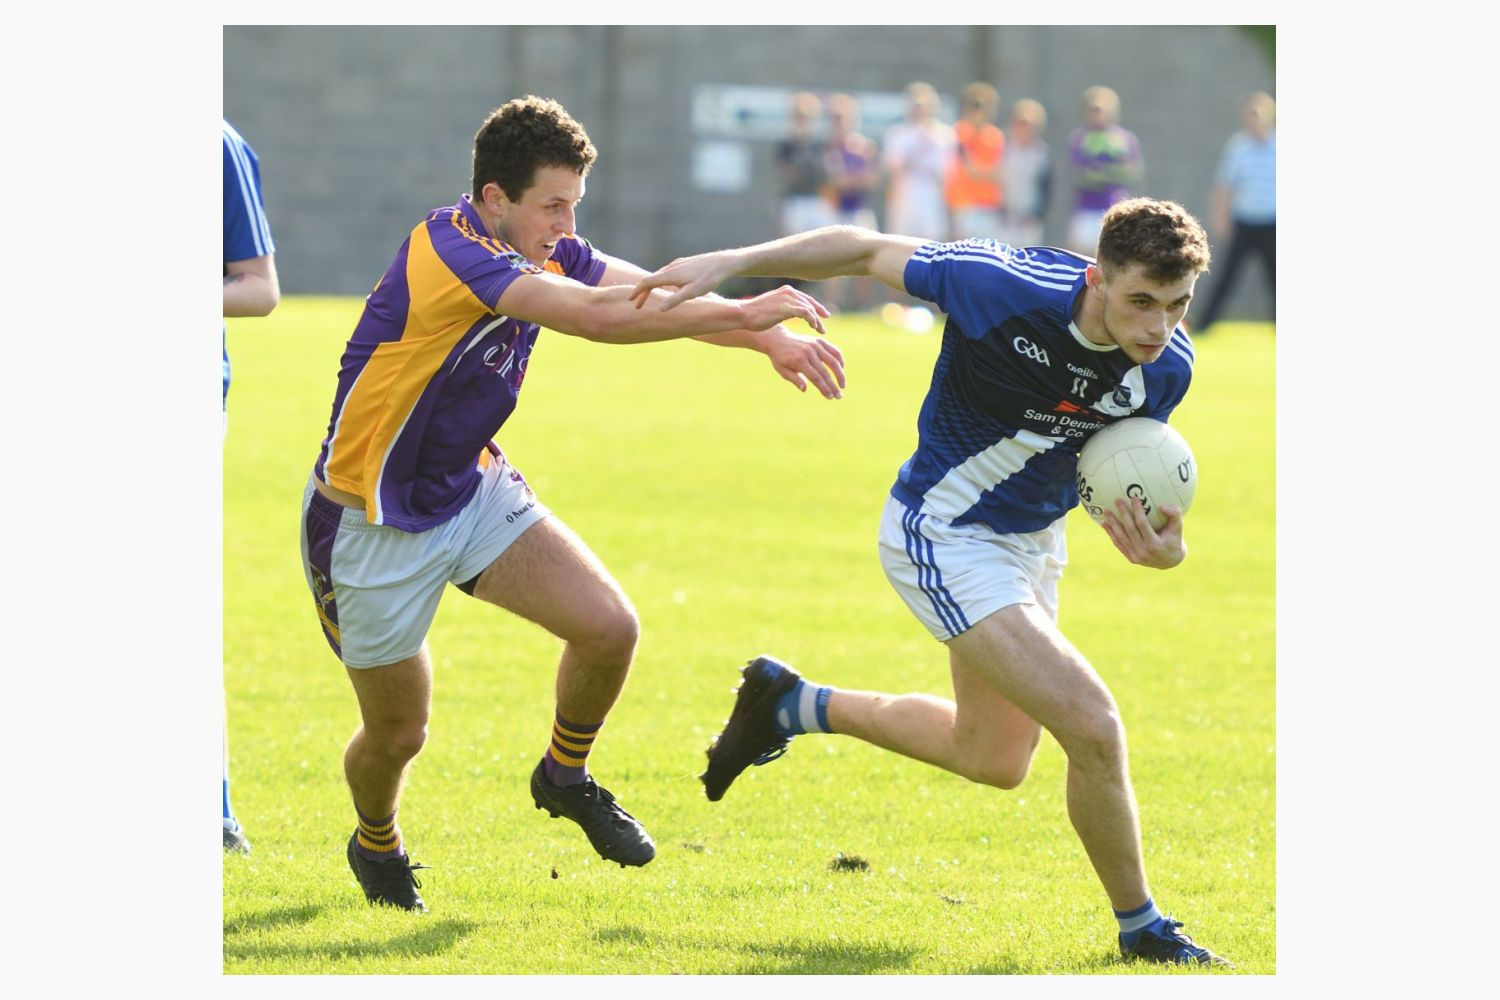 AFL2 League Game - Kilmacud Crokes Versus Round Towers Lusk Saturday June 8th Silverpark